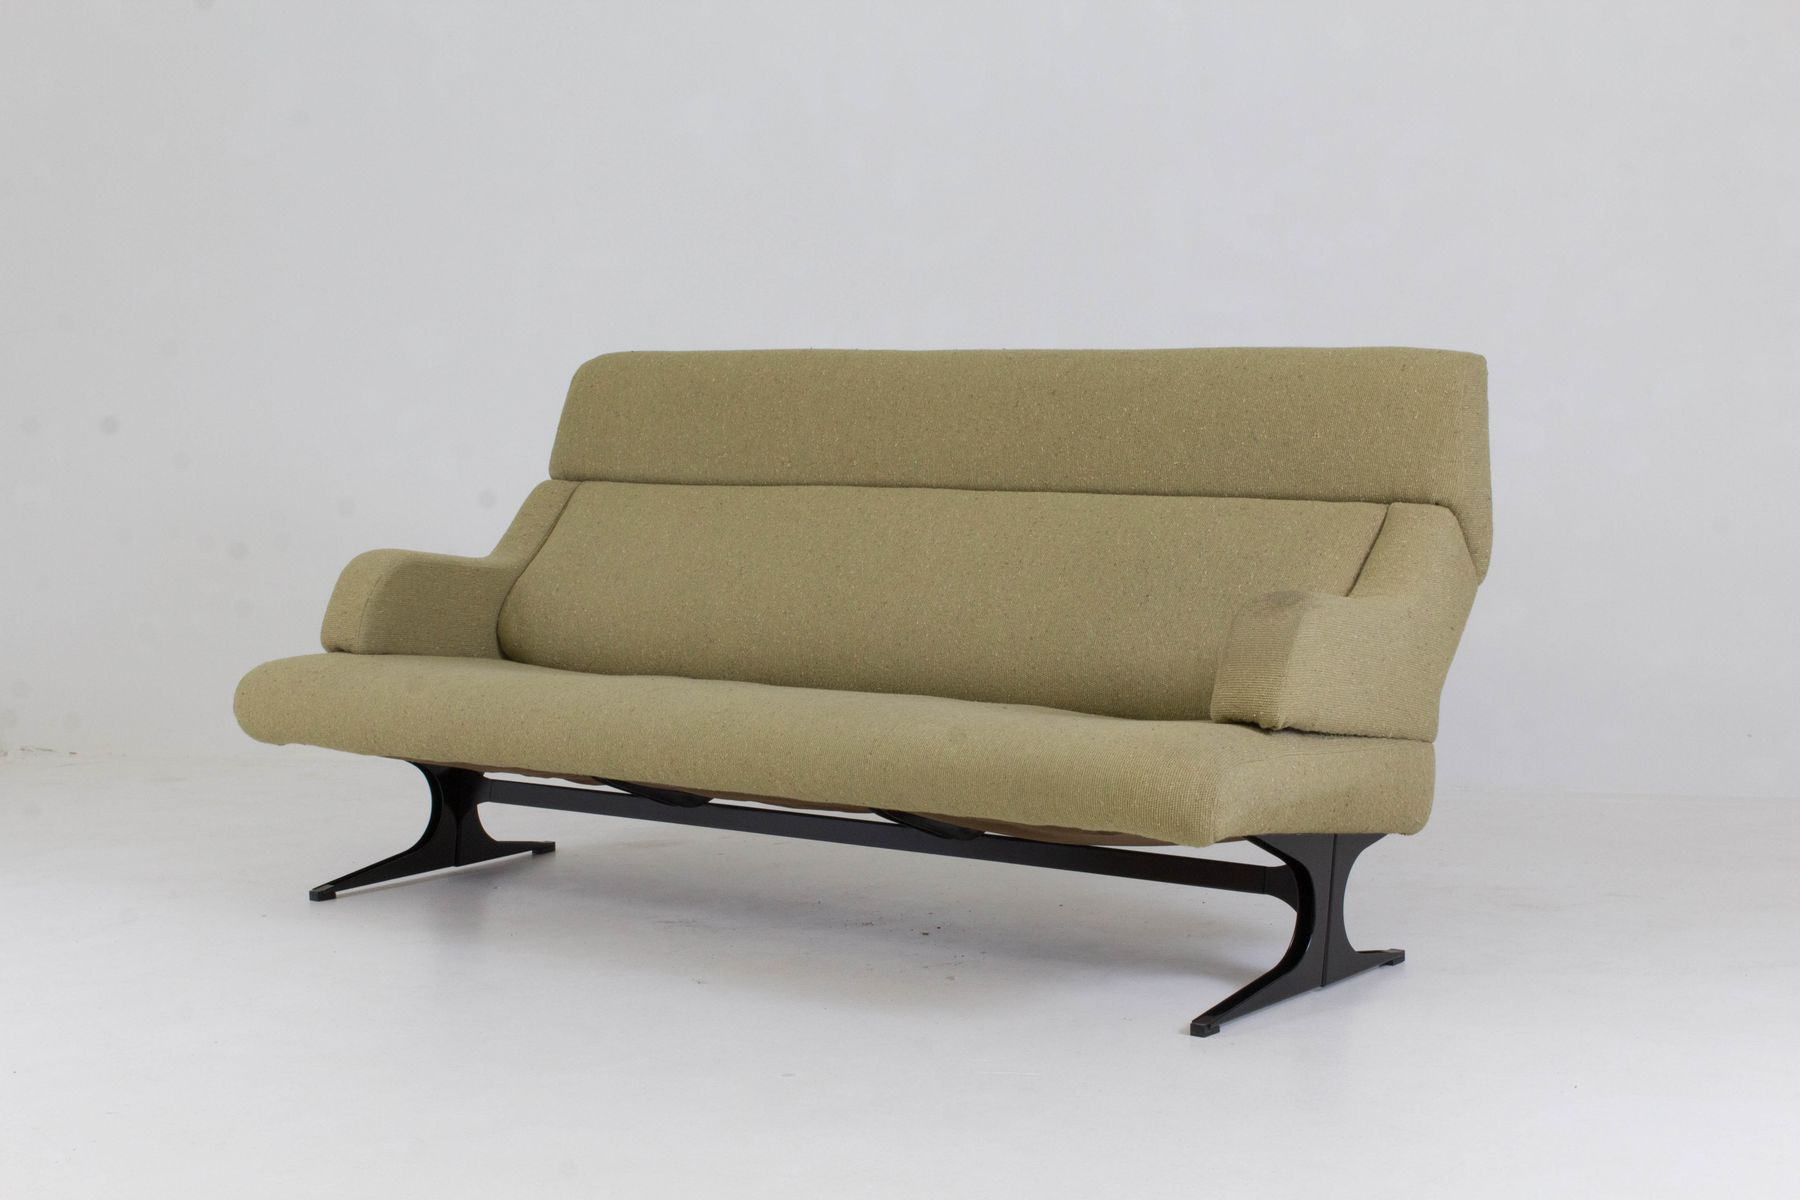 Mid Century Sofa by Martin Visser for t Spectrum 1965 for sale